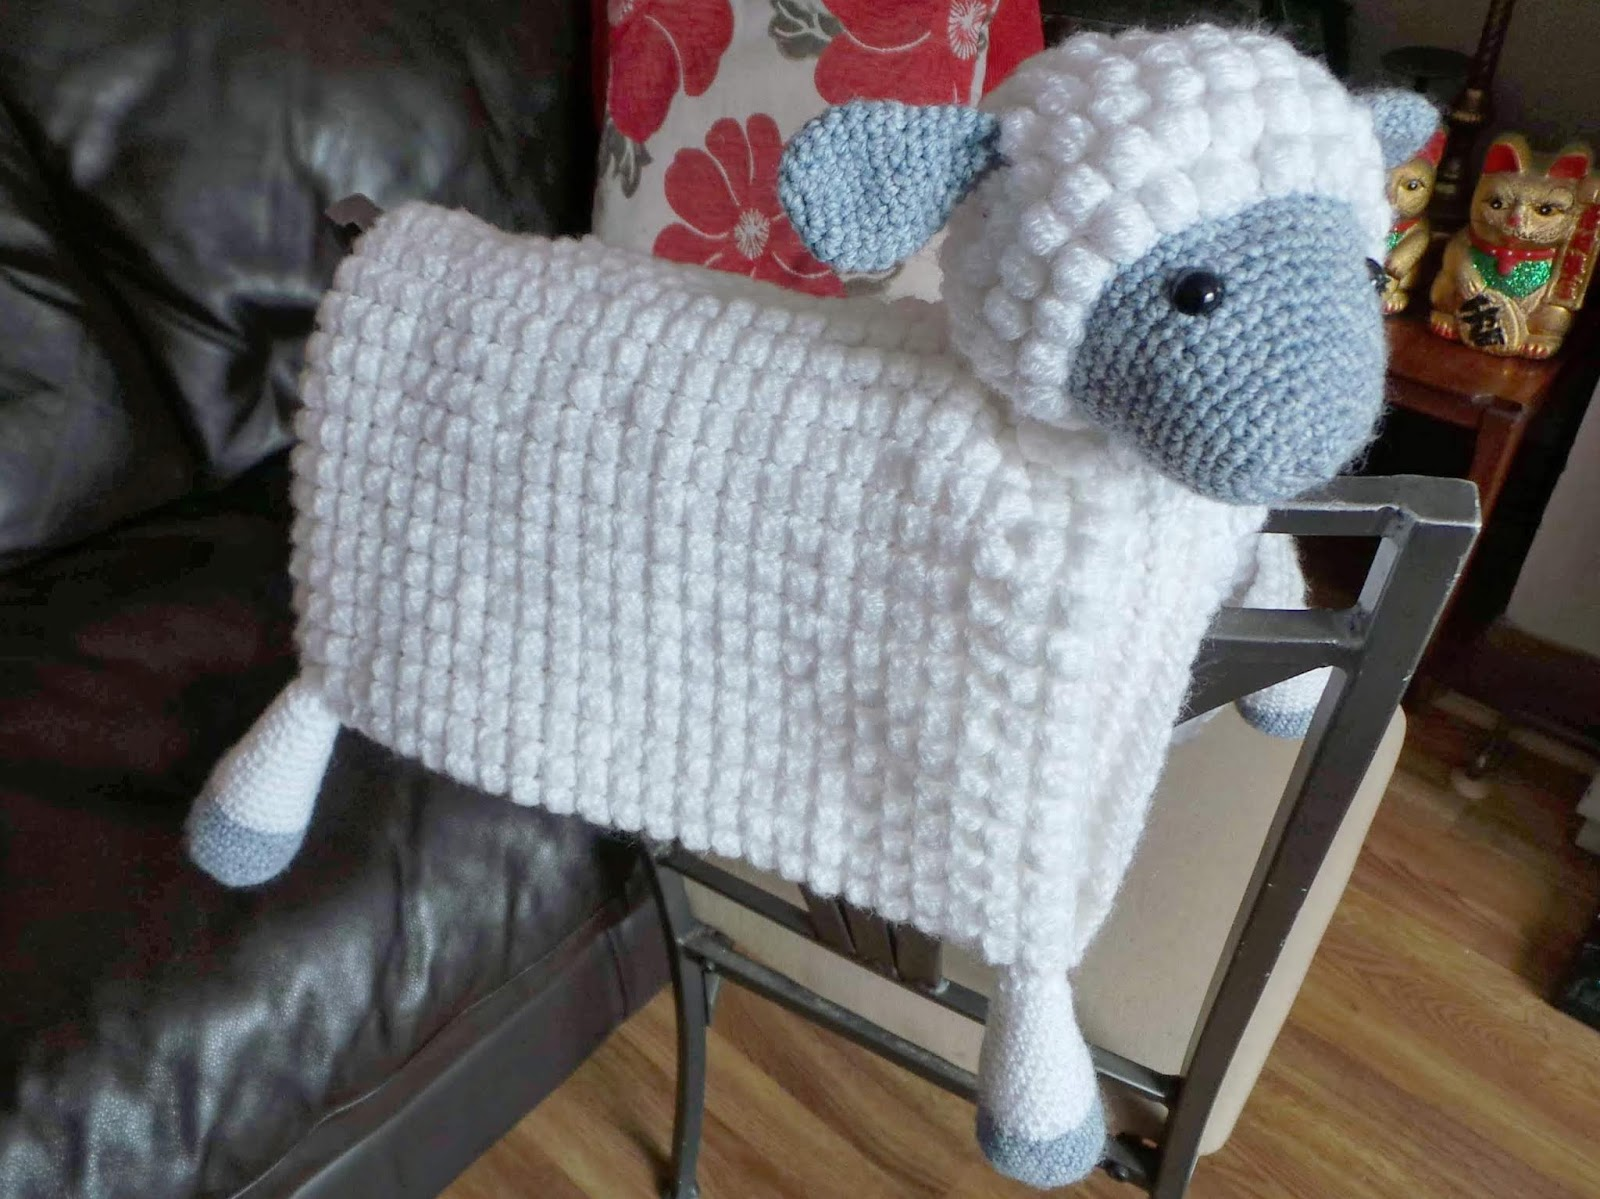 3in1 Farm Sheep Folding Baby Blanket Crafting Happiness